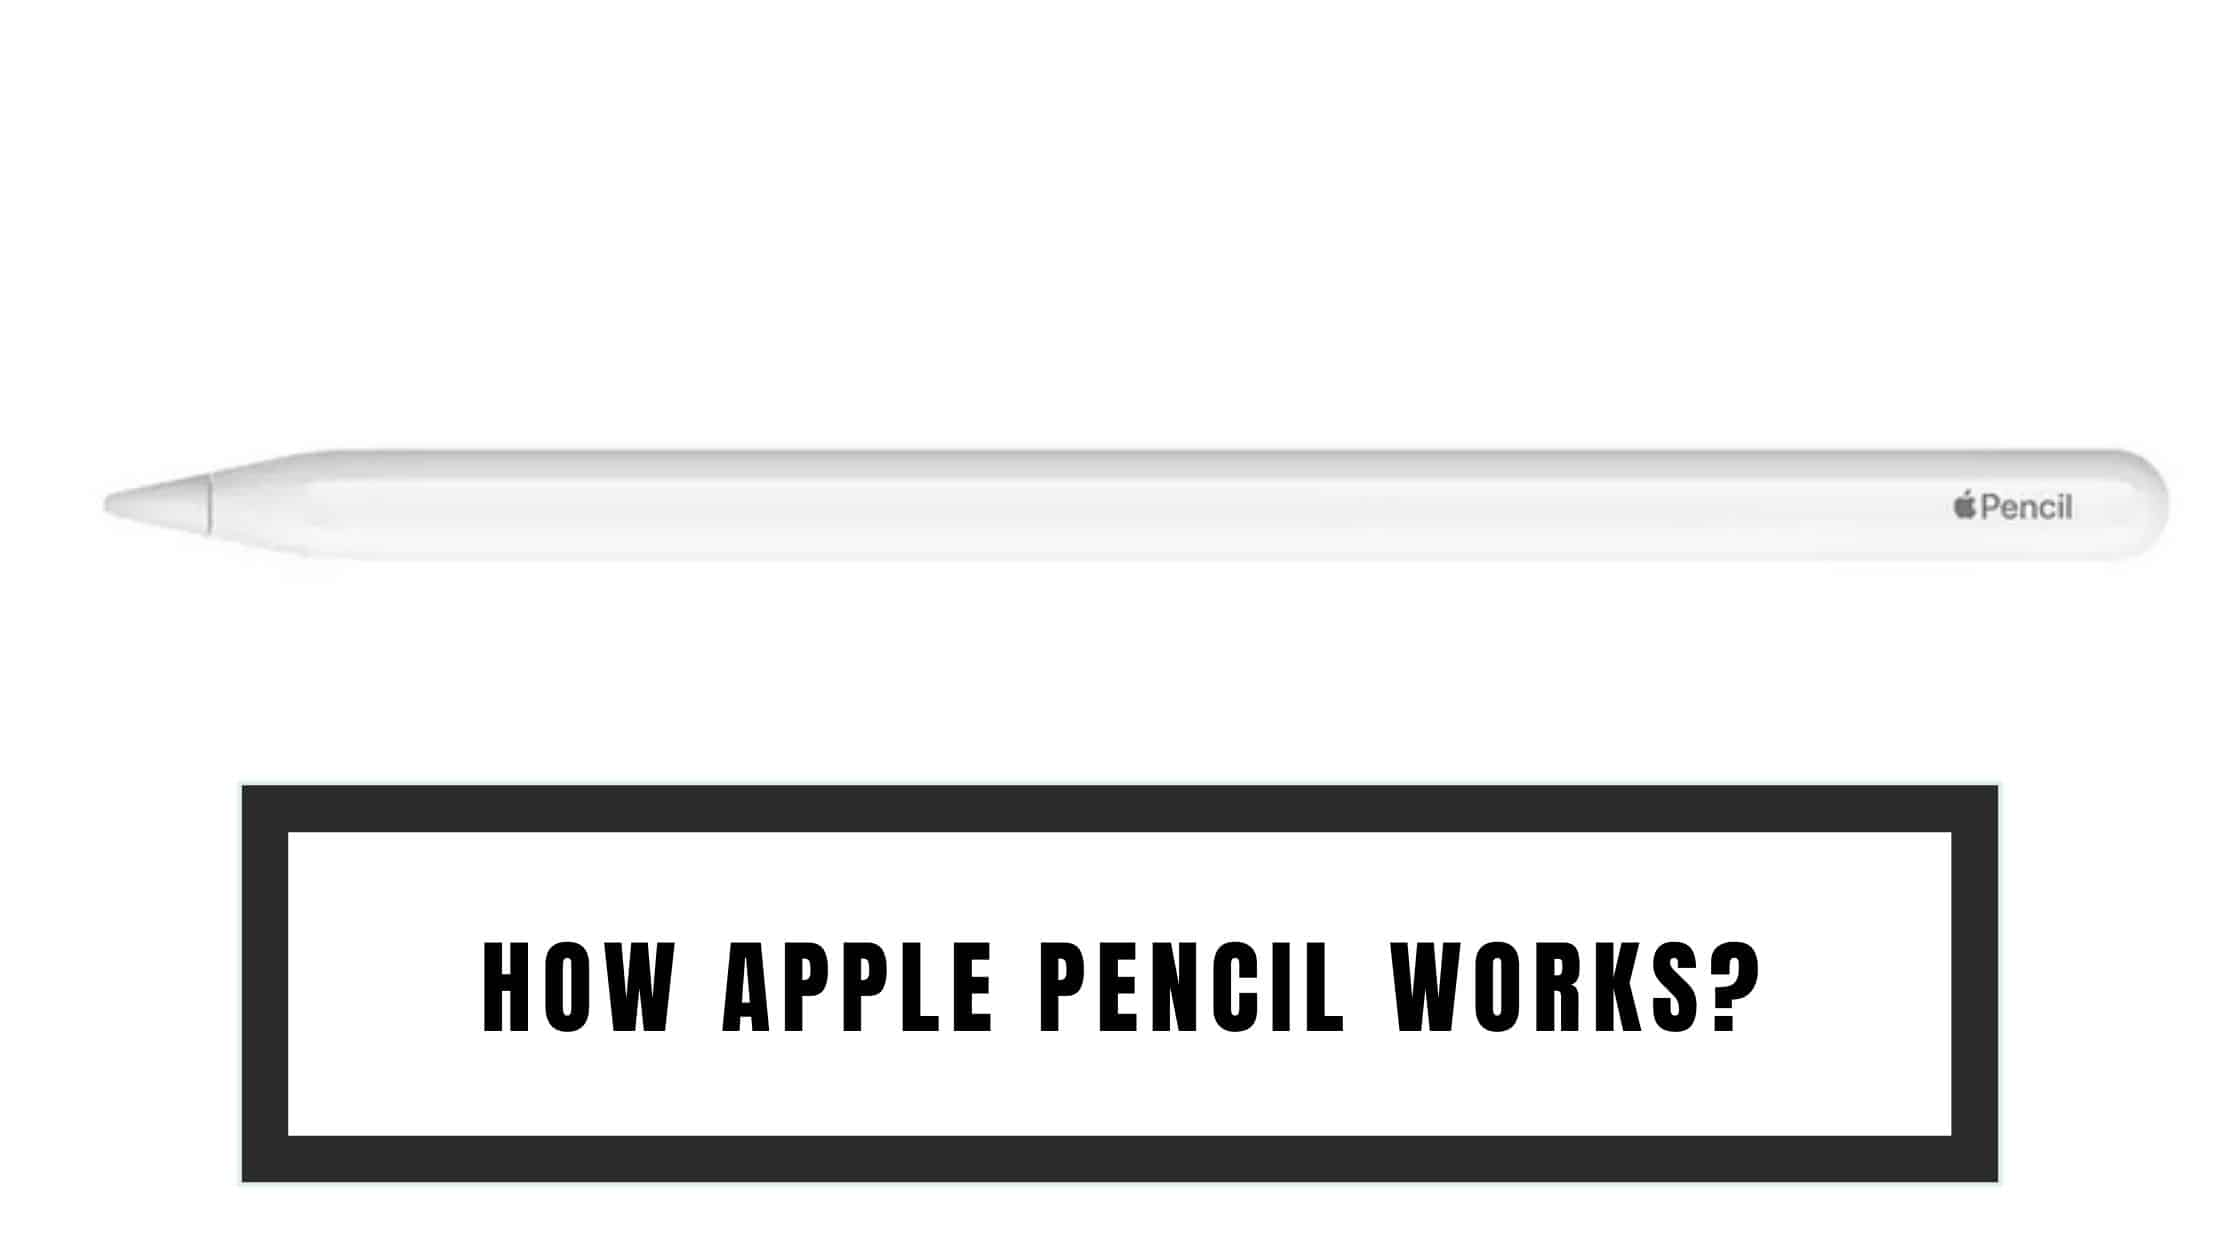 How Apple Pencil Works